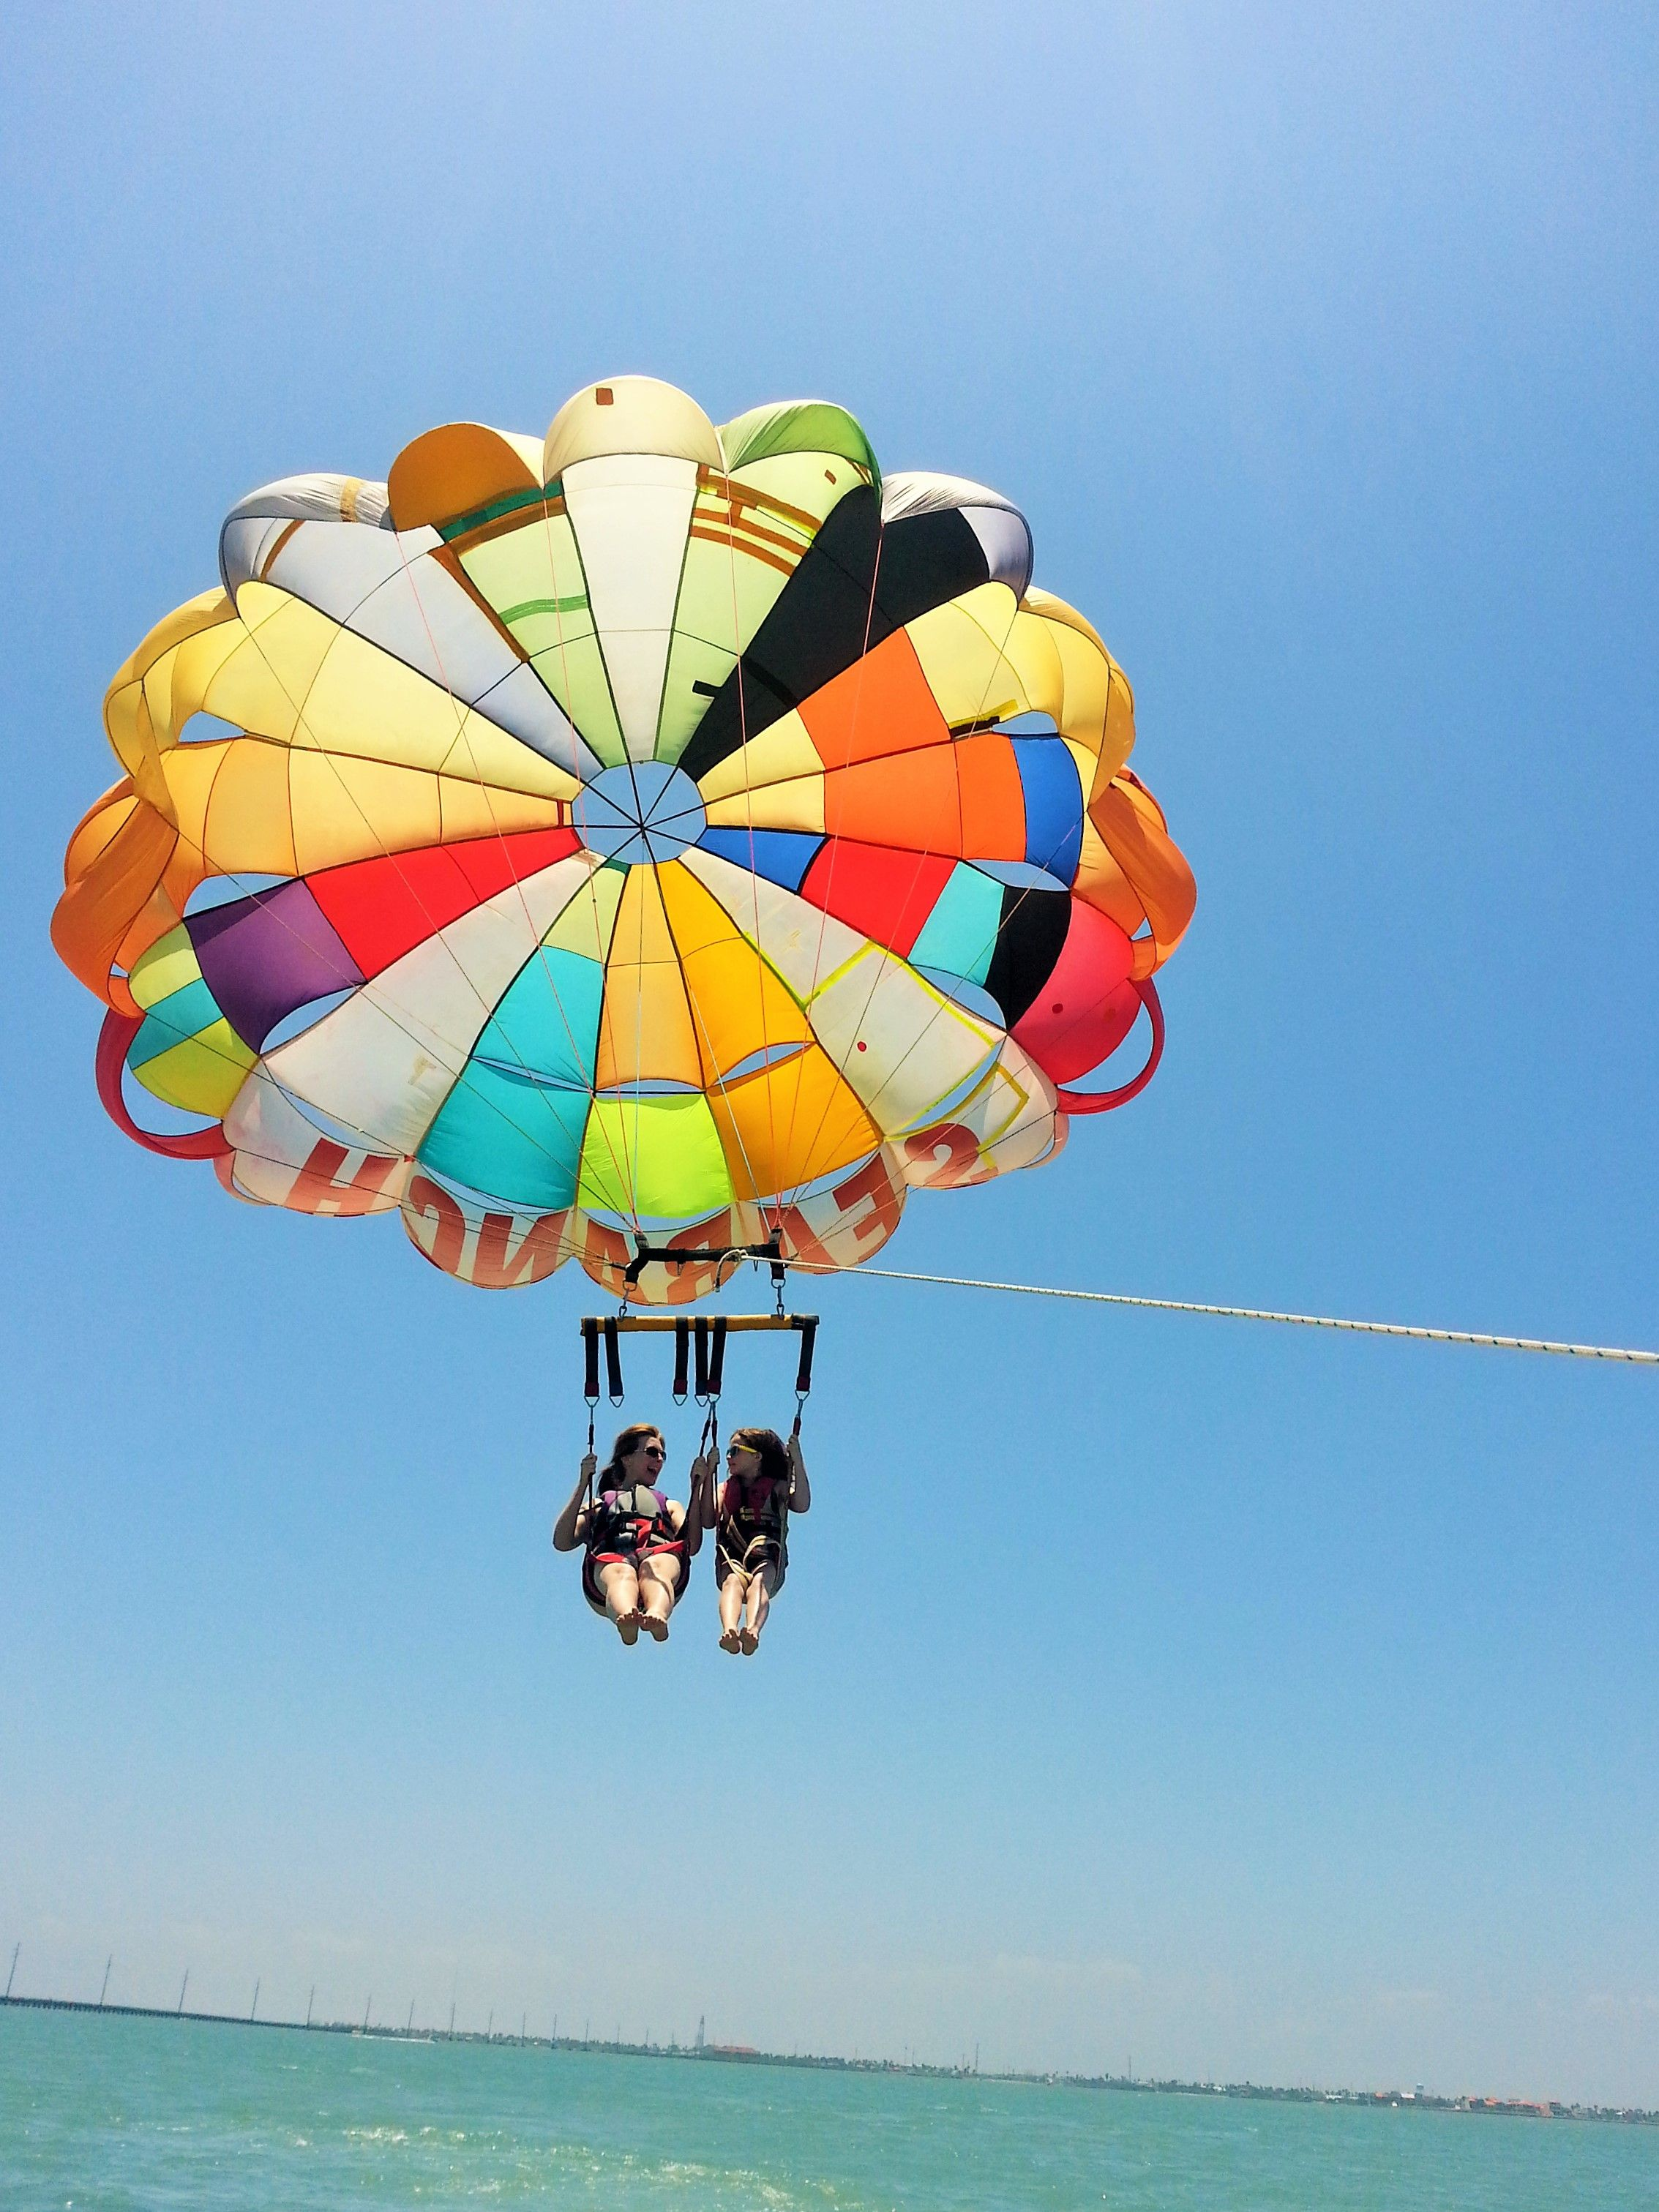 Parasailing South Padre Island Texas In 2019 South